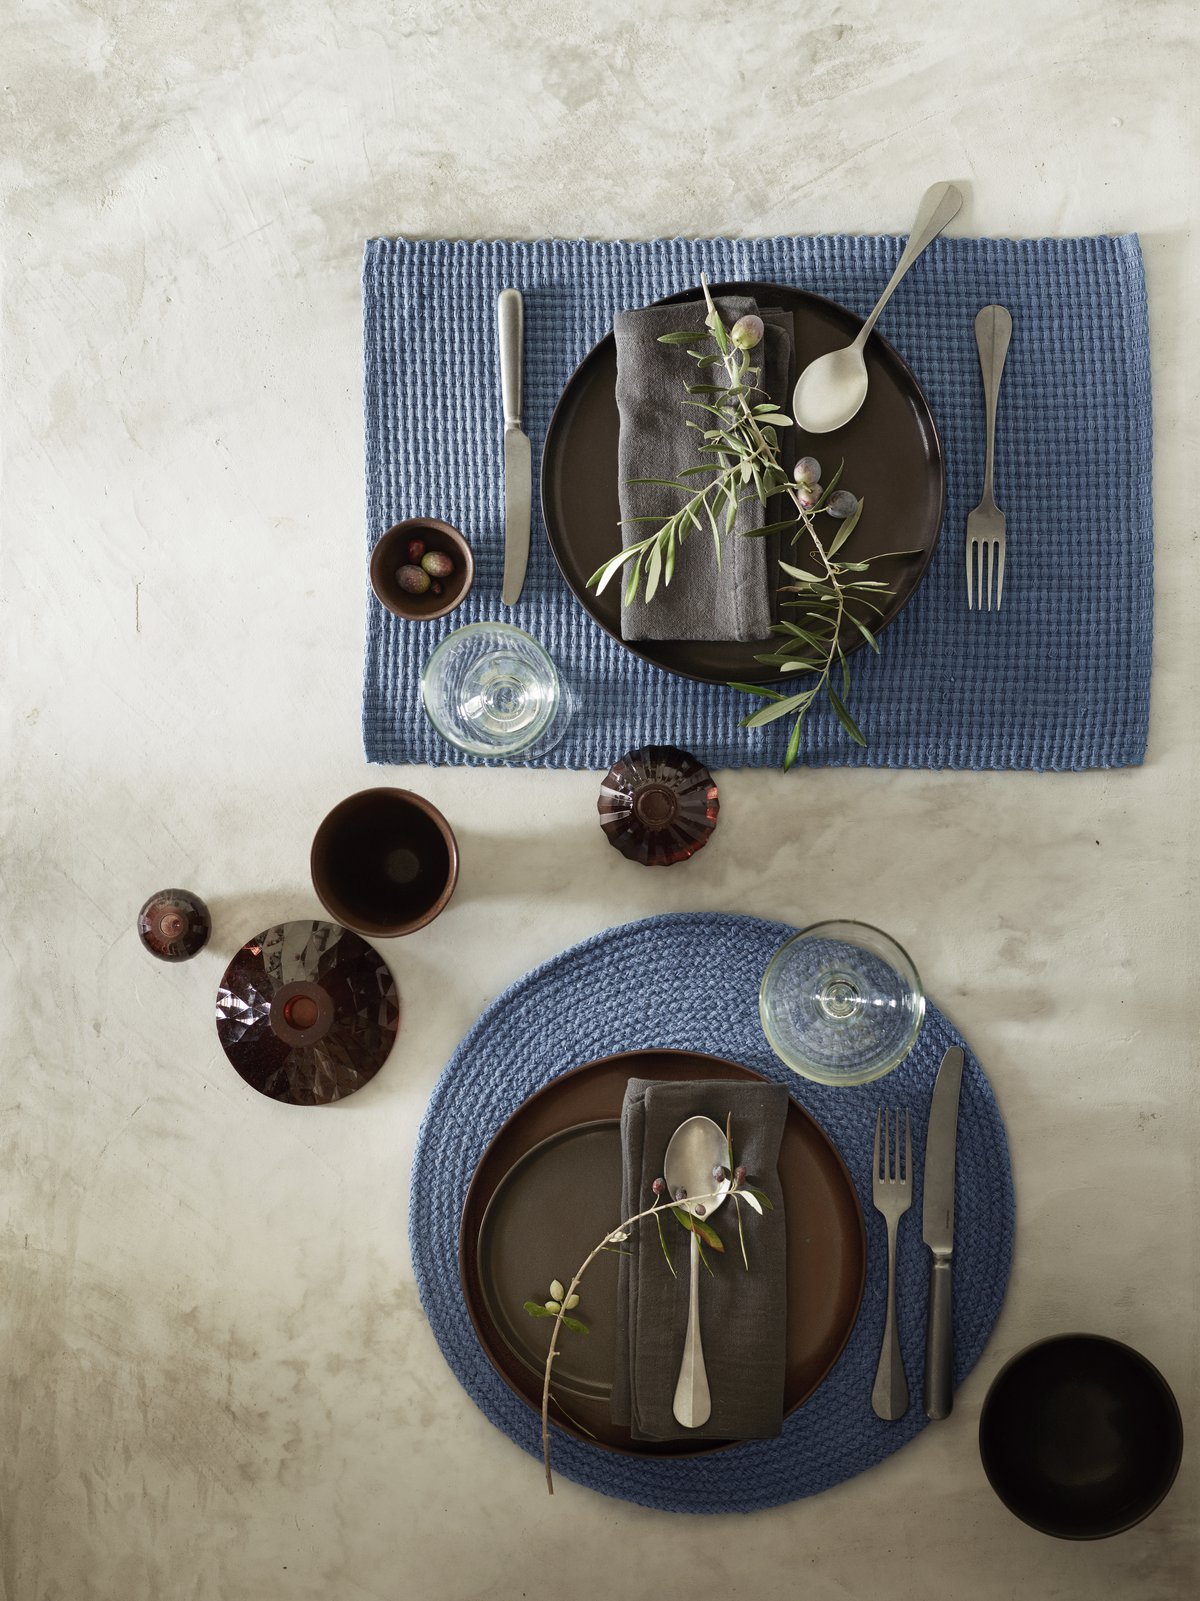 A sense of spring and colorful table settings with healthy food on the meny